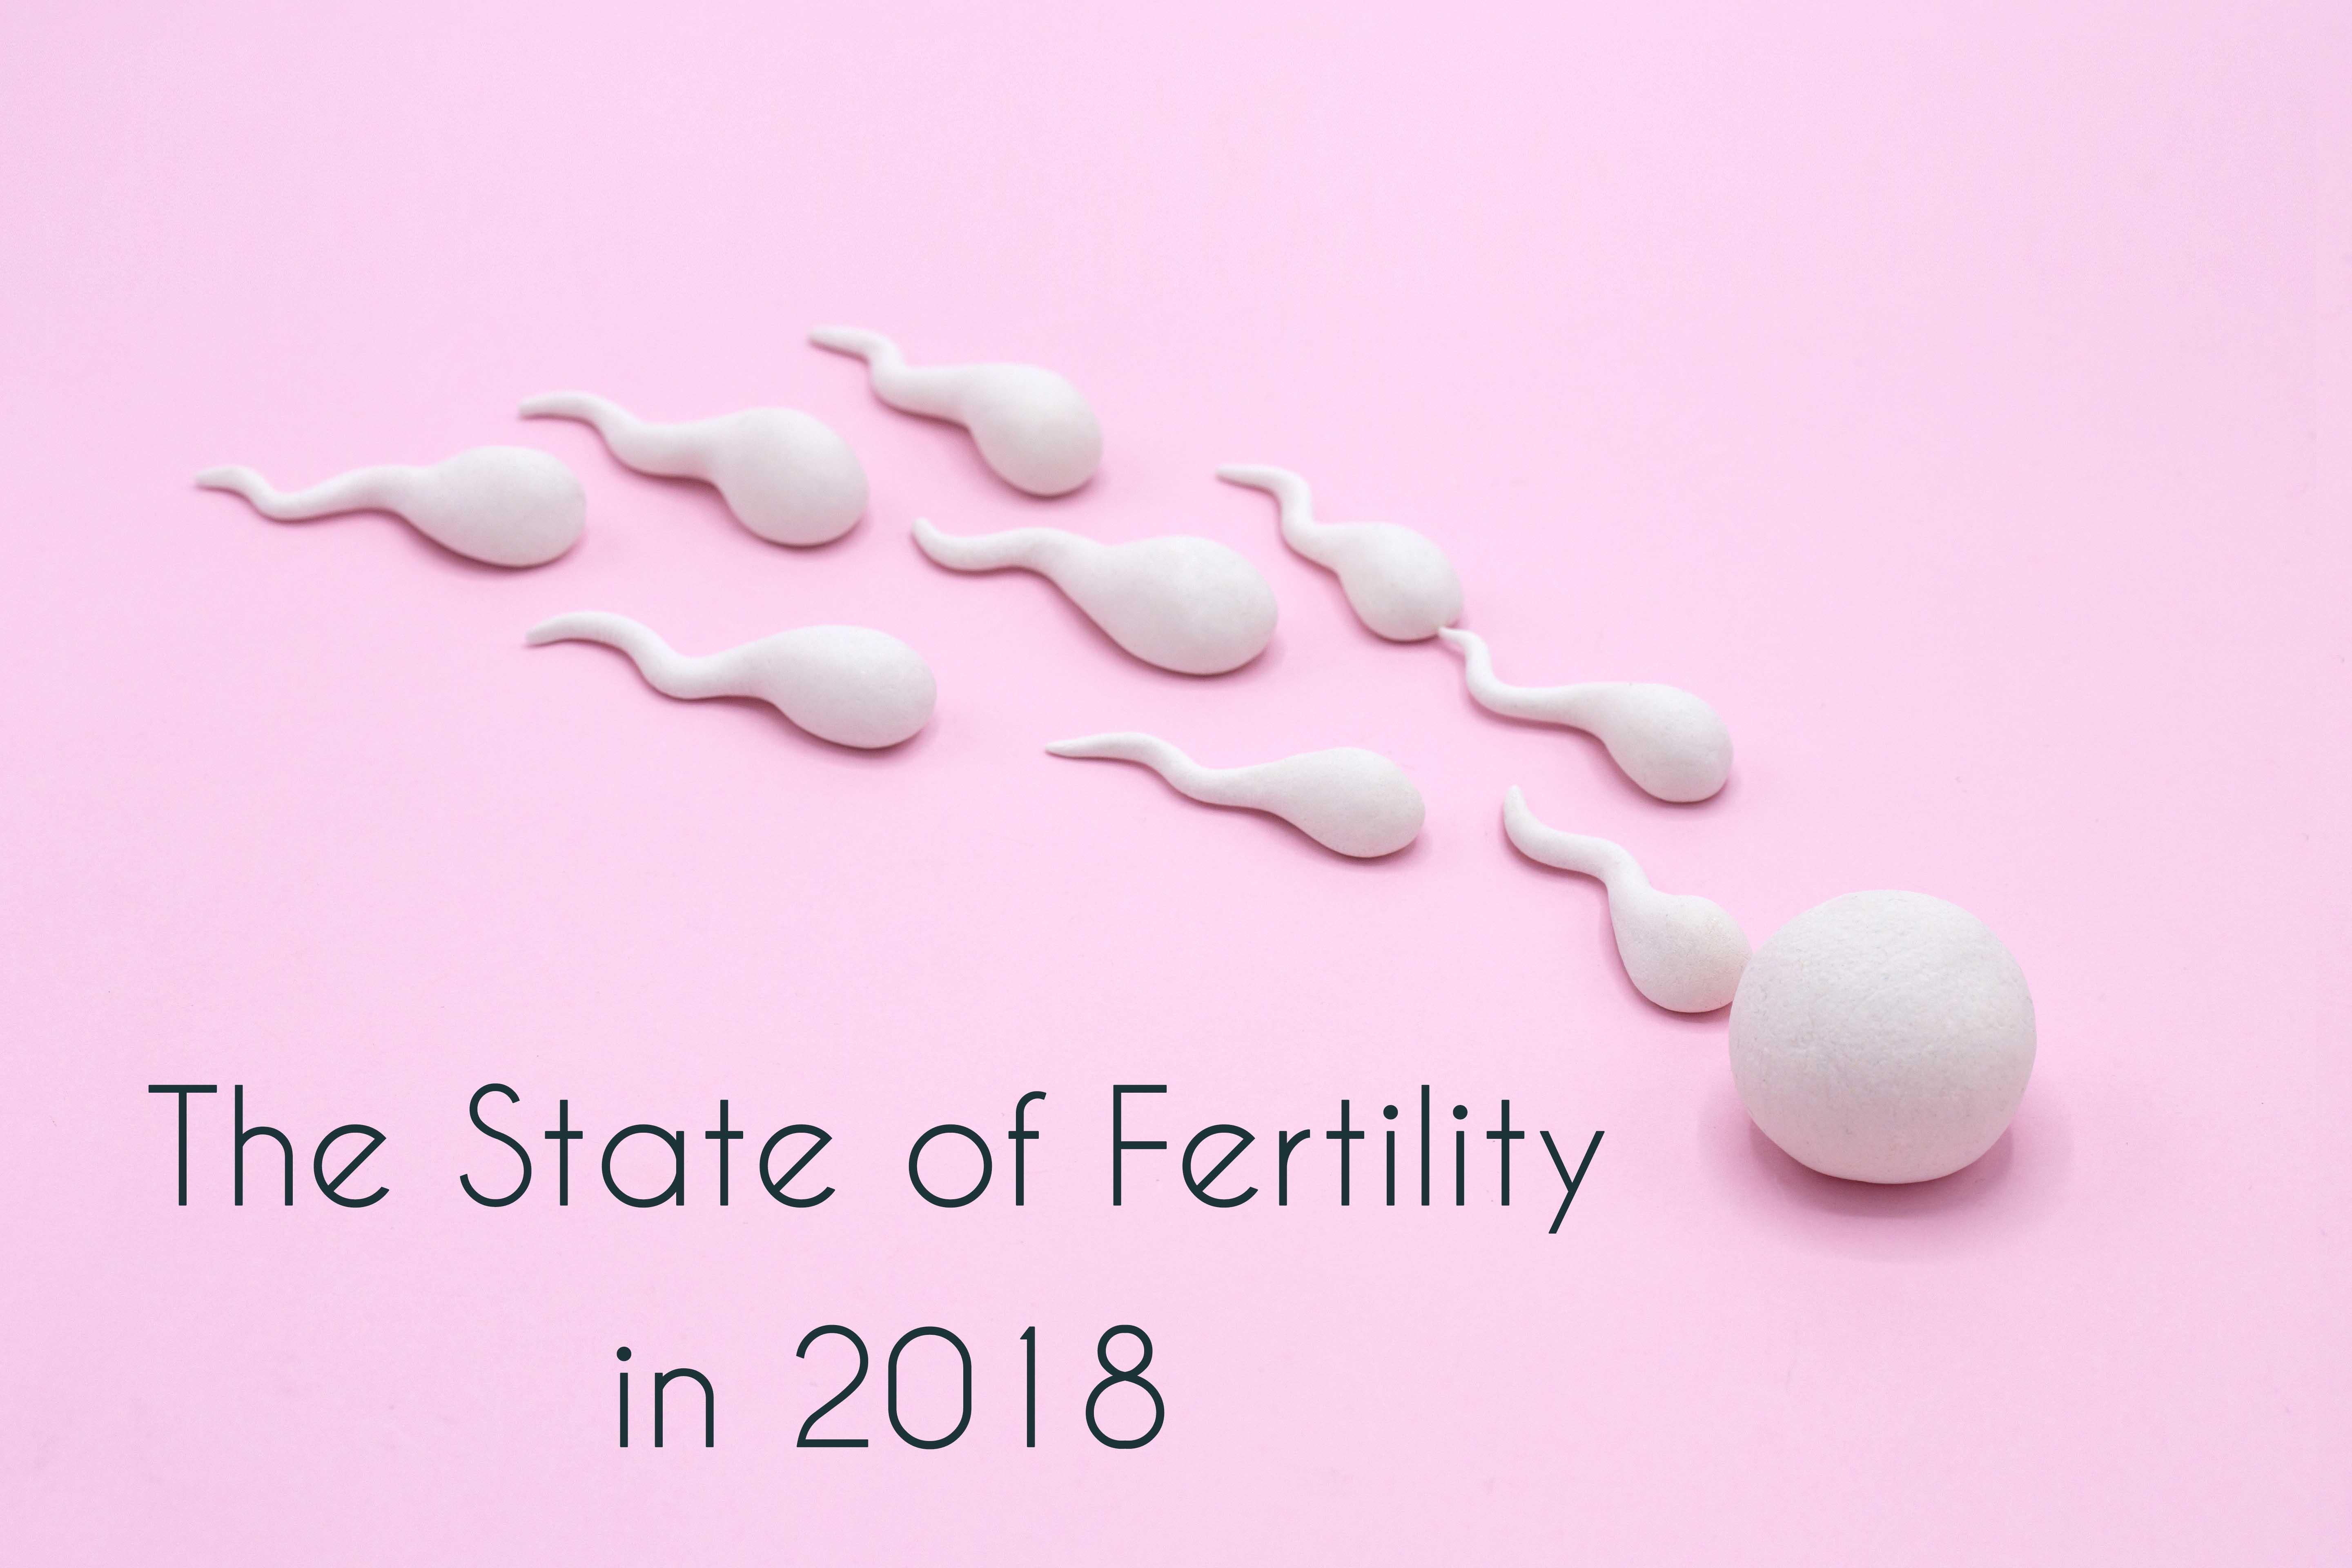 The state of fertility in 2018: Know your options - The